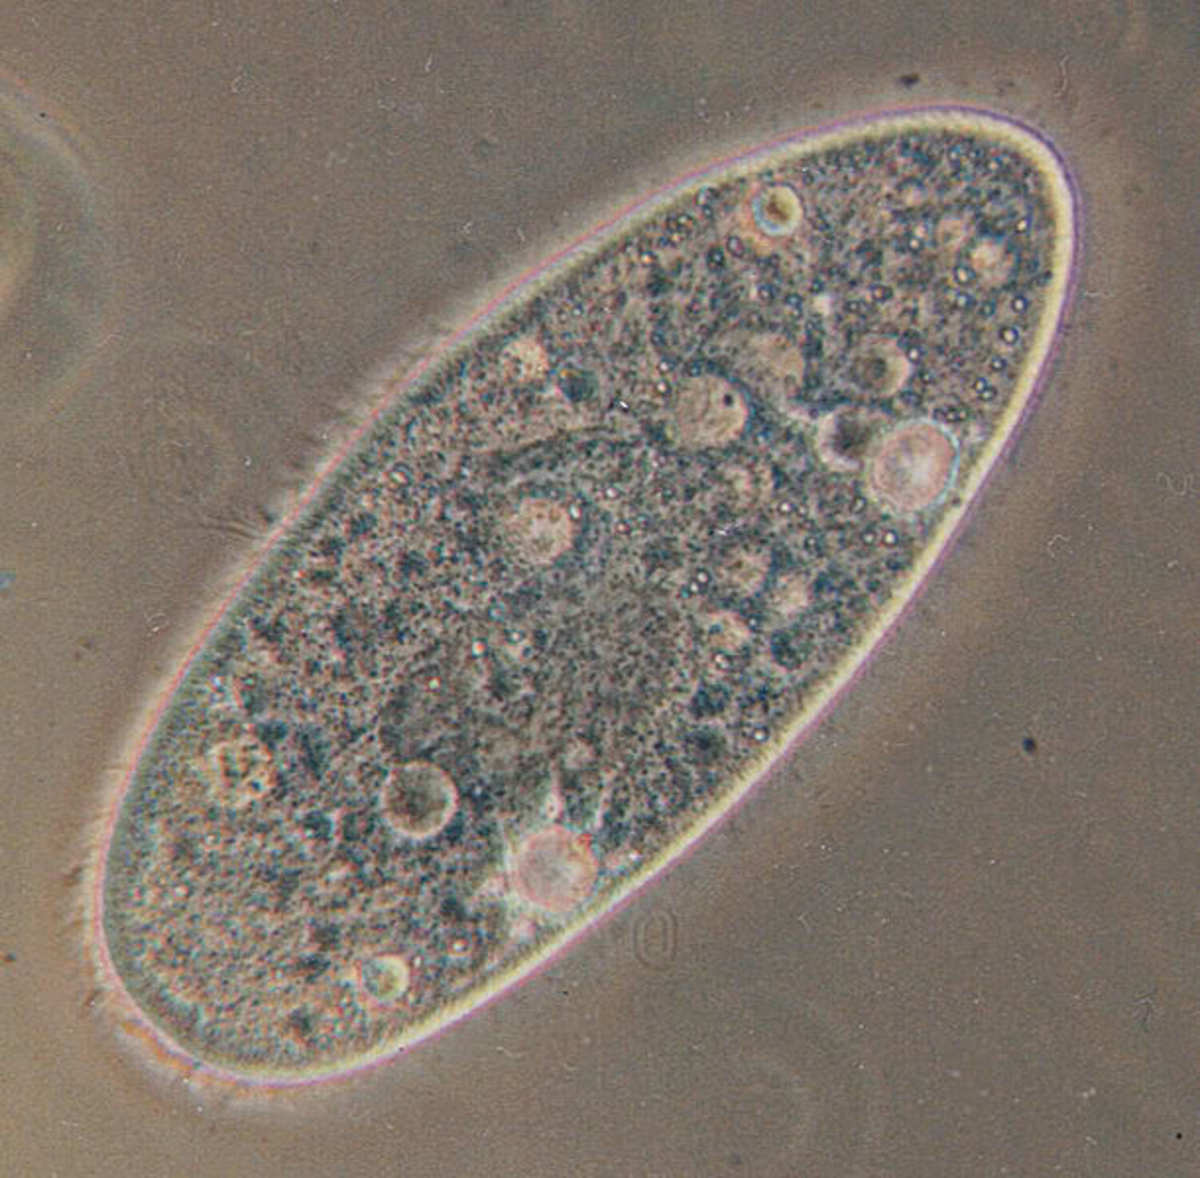 Paramecium - a type of cilate